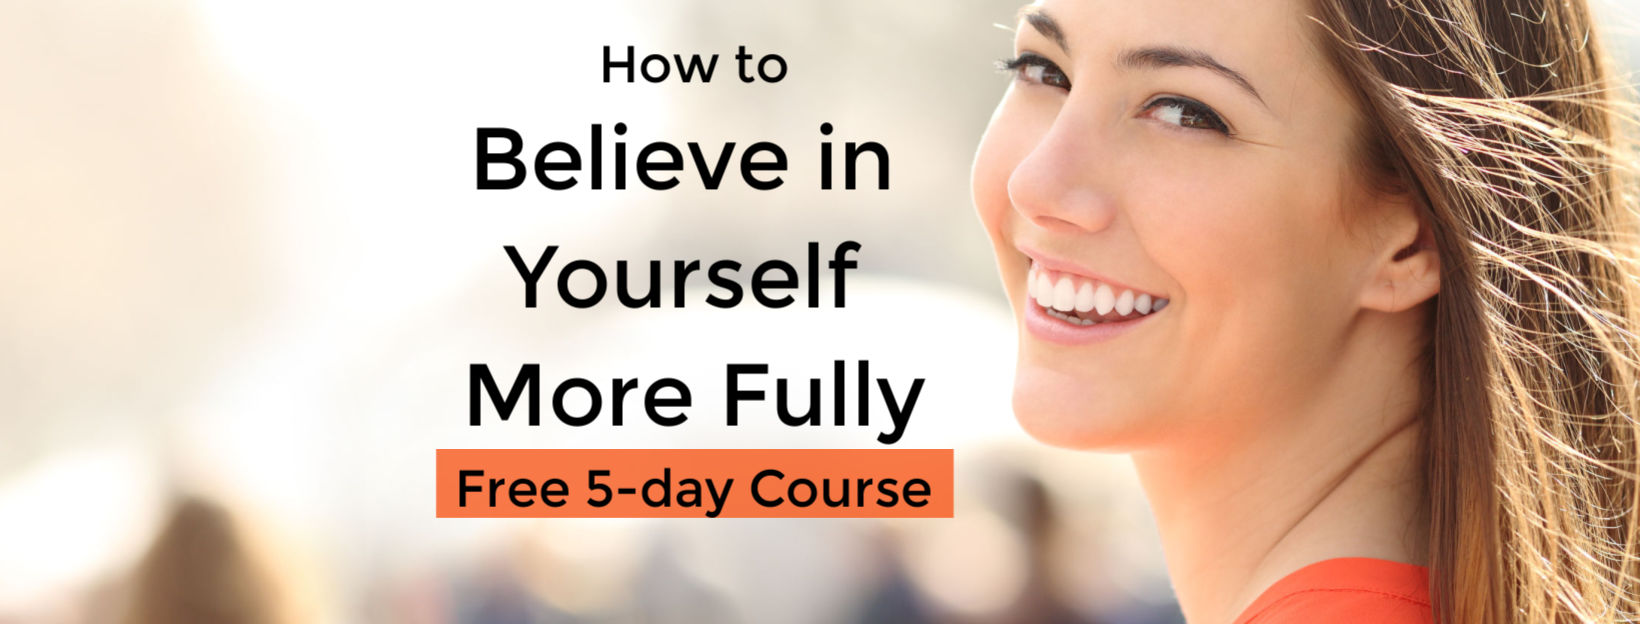 How to believe in yourself more fully free confidence building course